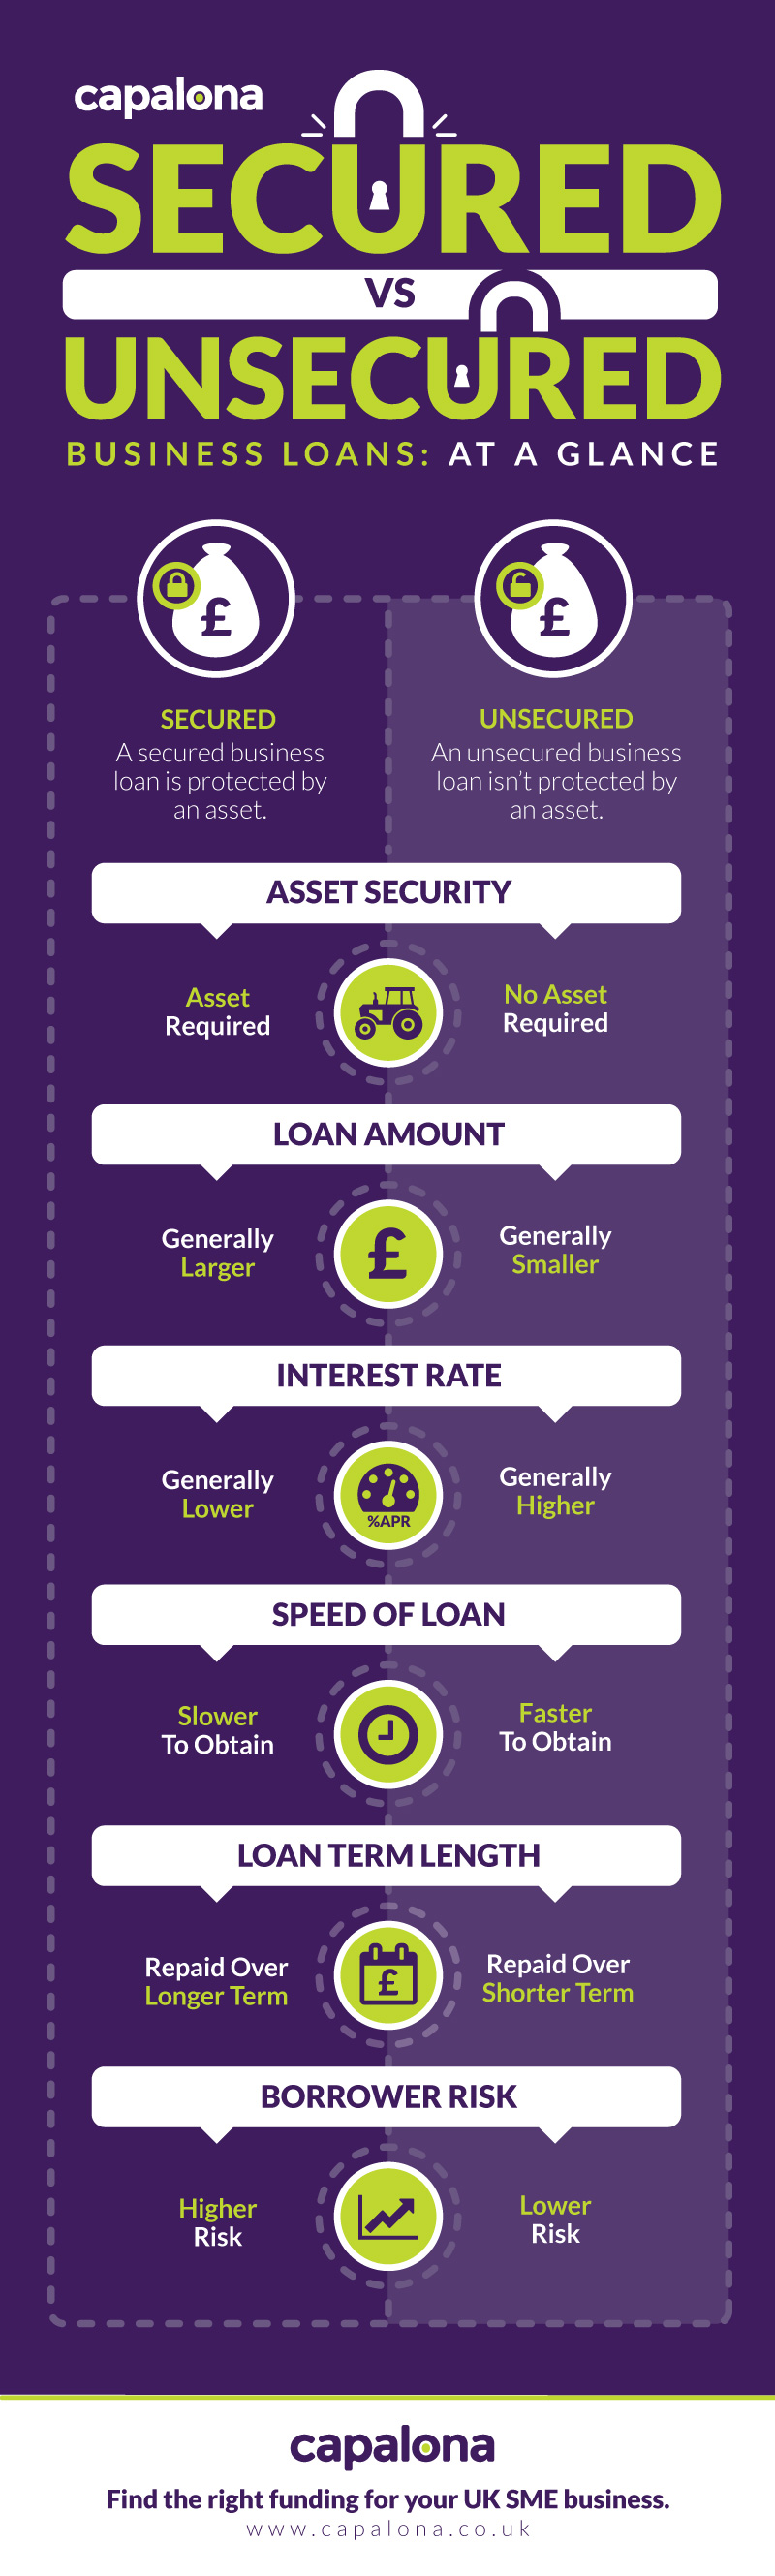 Secured business funding vs unsecured business funding - infographic